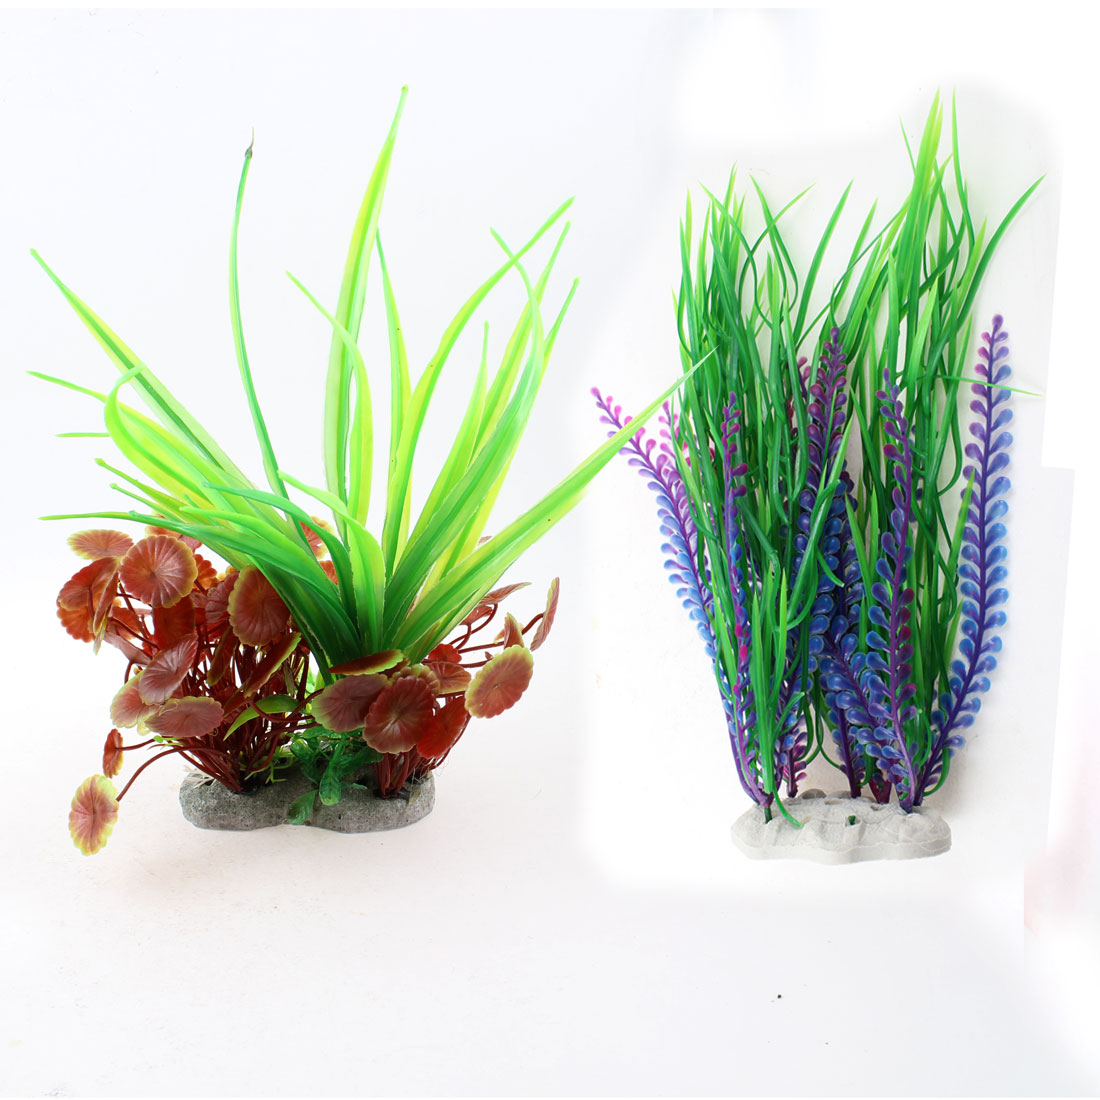 "10.4"" Assorted Color Plastic Emulational Aquatic Grasses for Aquarium 2 Pcs"